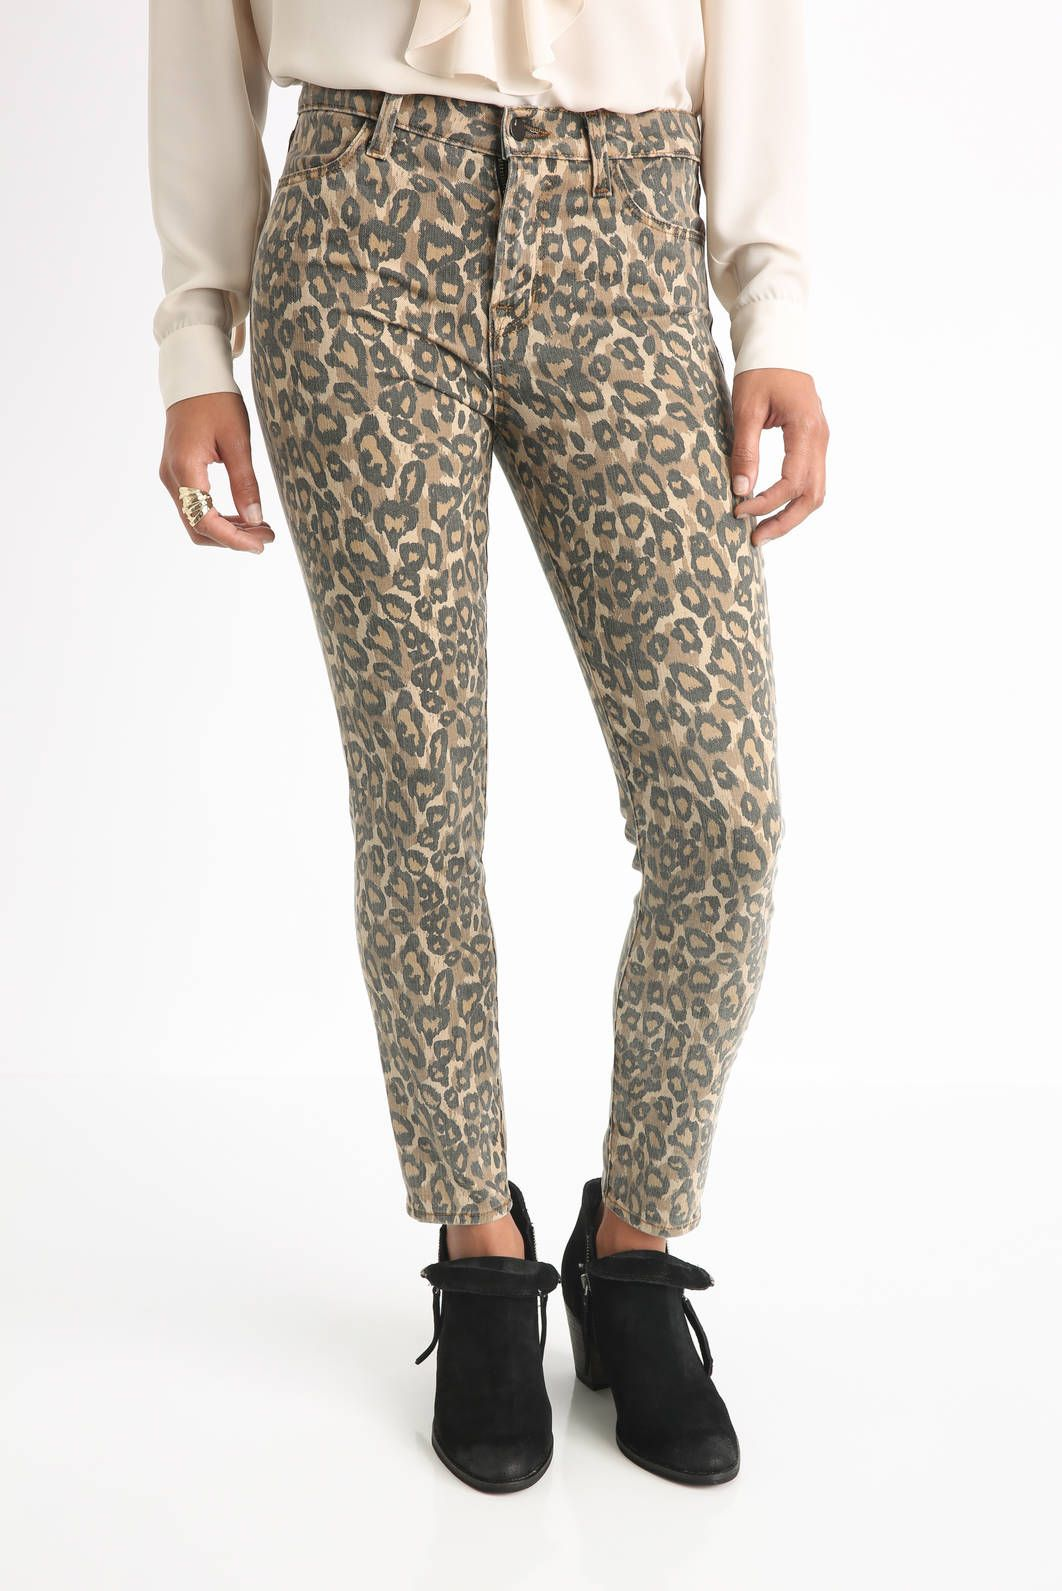 J Brand Jeans Alana in Golden Leopard Print Skinny Jeans | South Moon Under